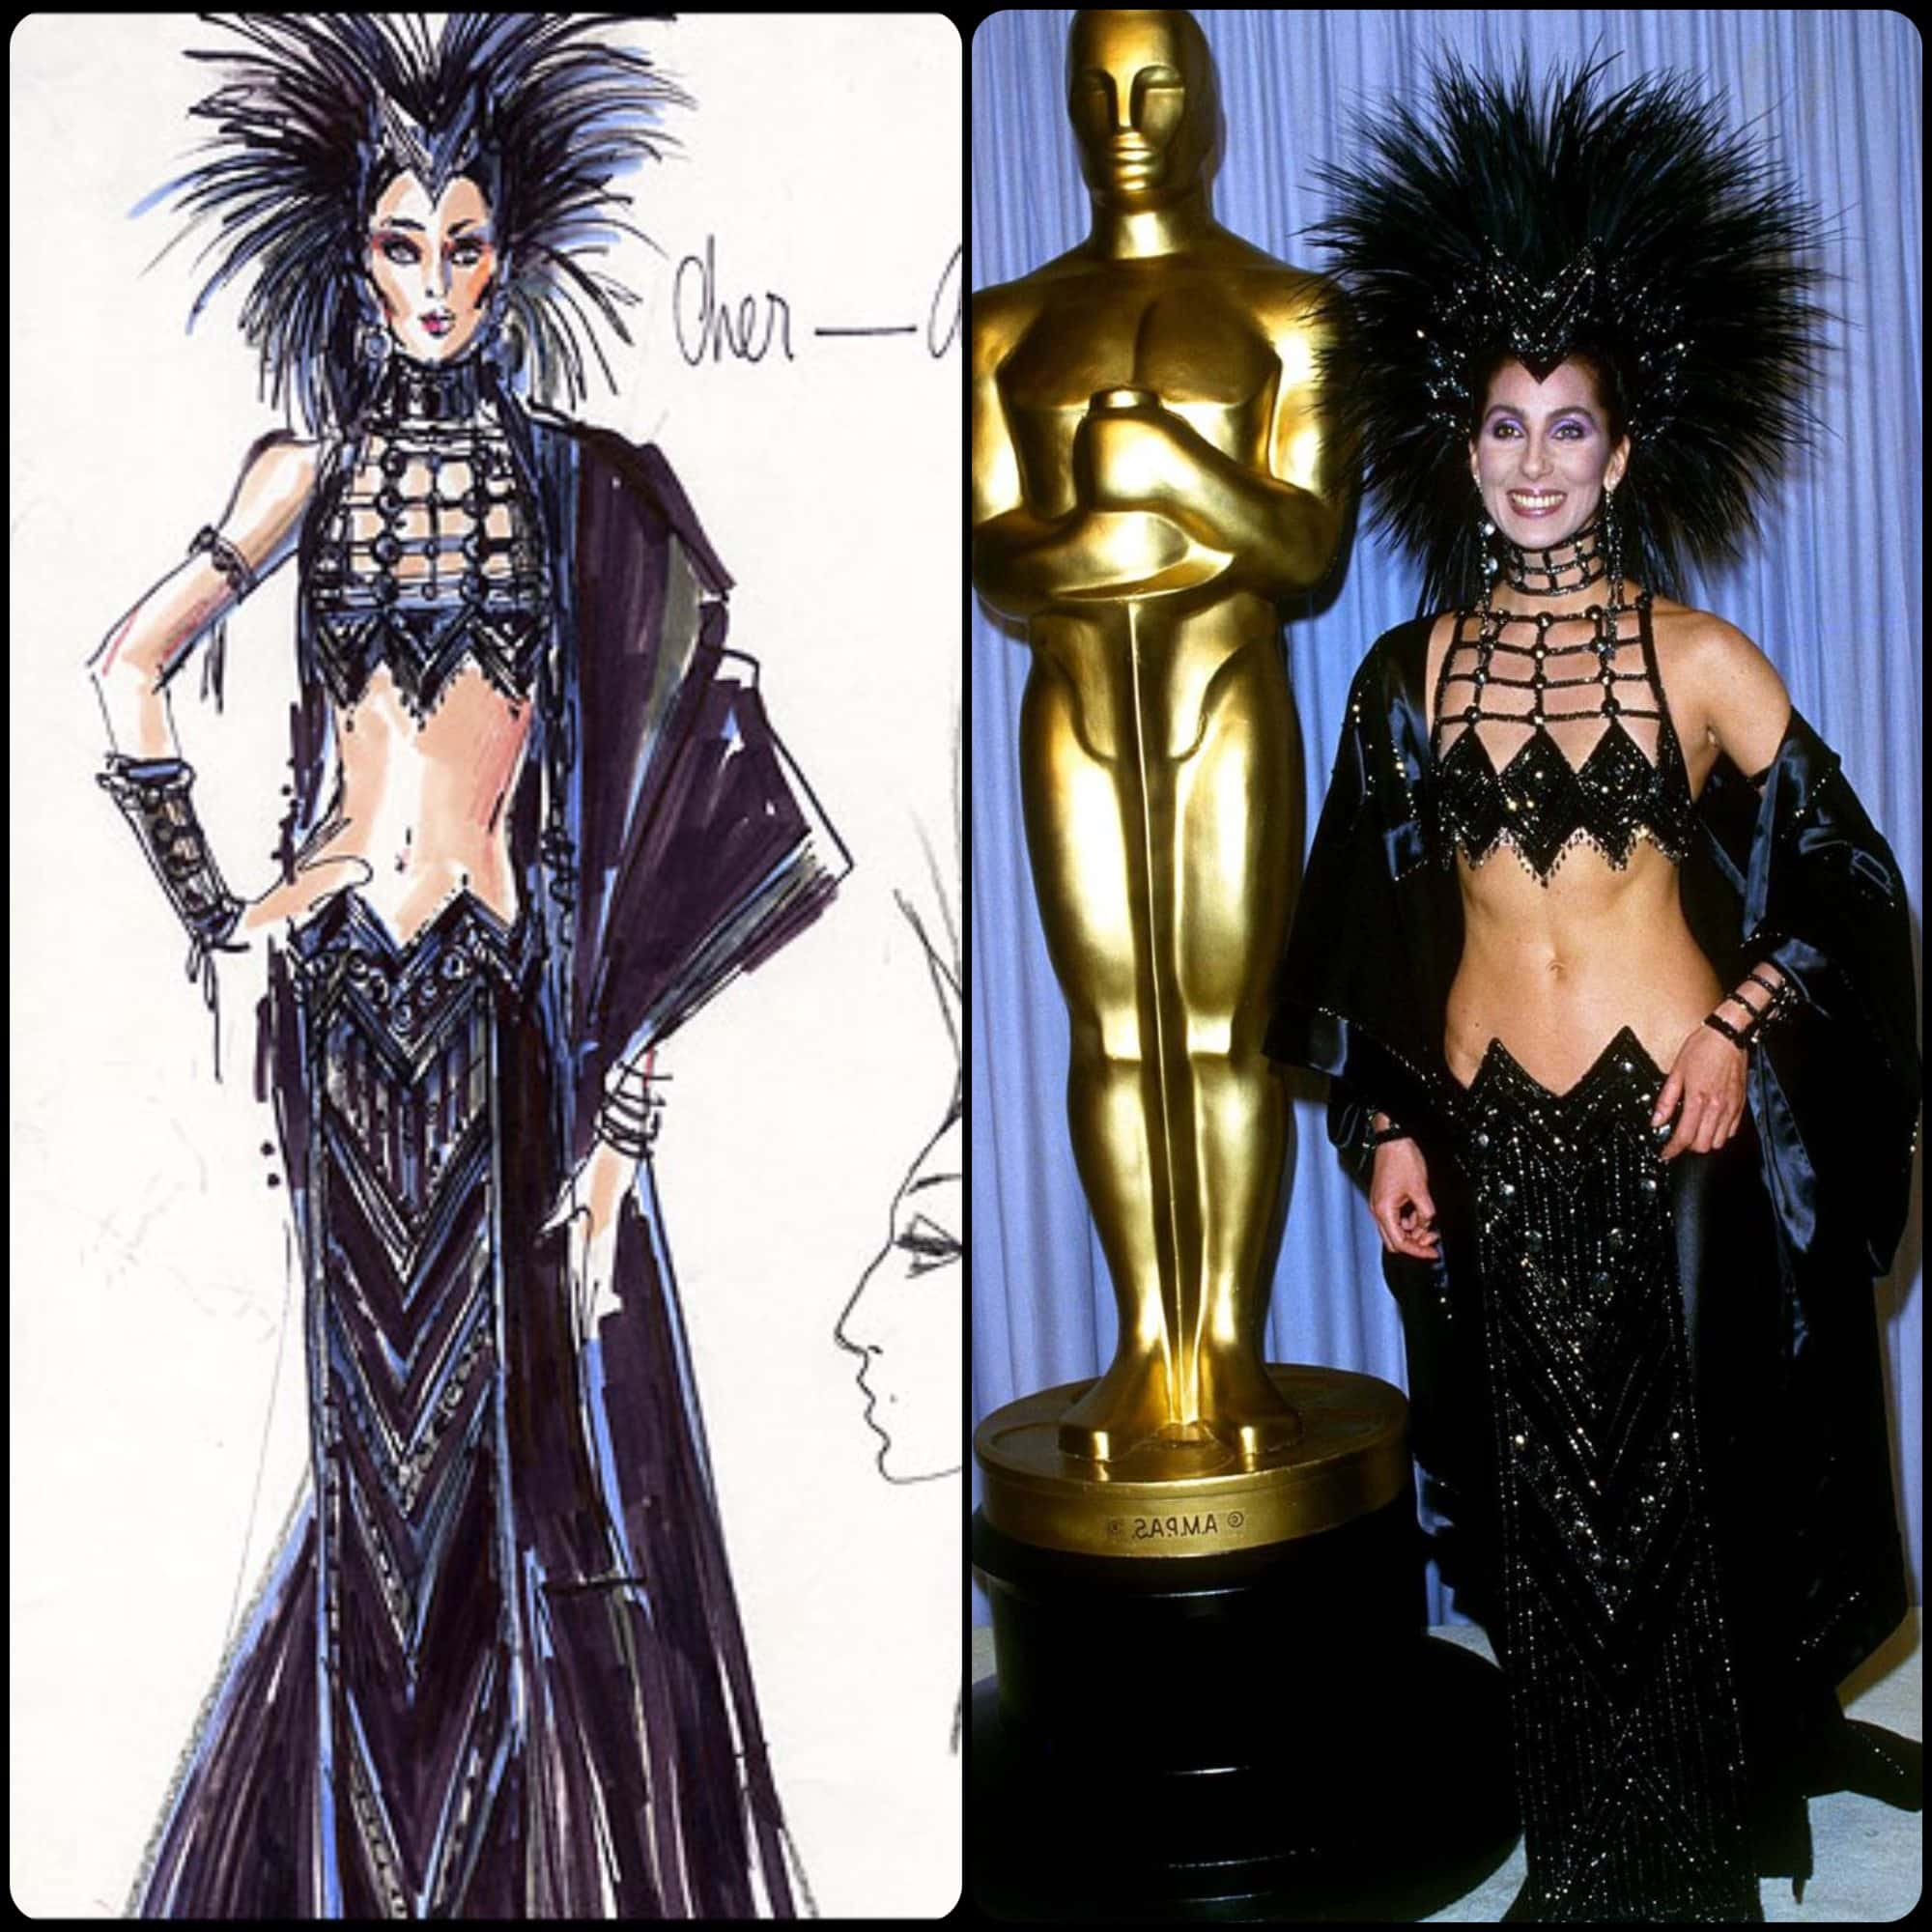 Cher in Bob Mackie dress at Oscars Academy Awards